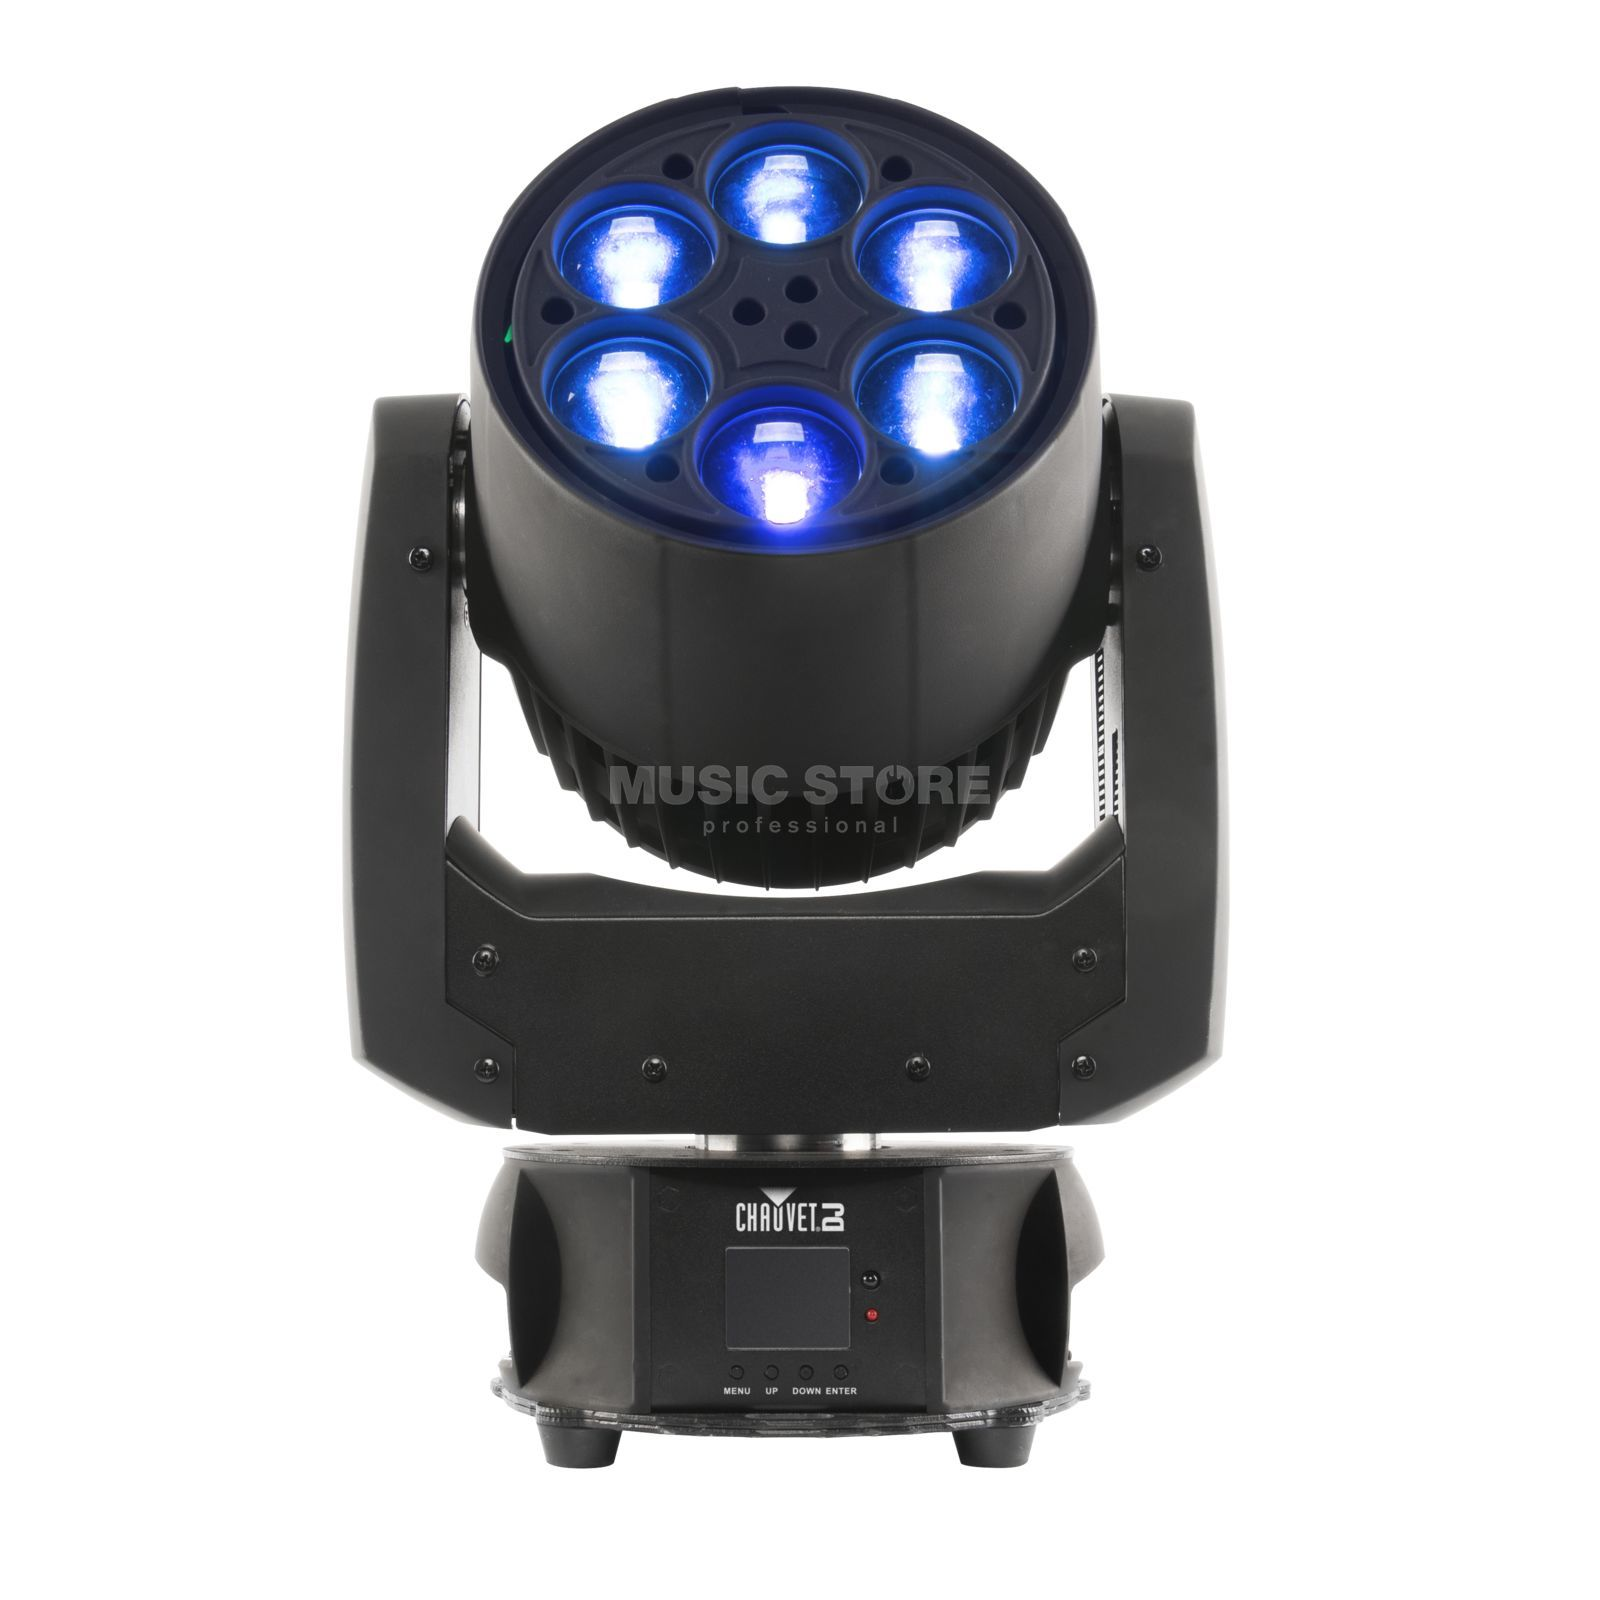 Chauvet DJ Intimidator Trio 6 x 21W Beam / Wash Moving Head Product Image